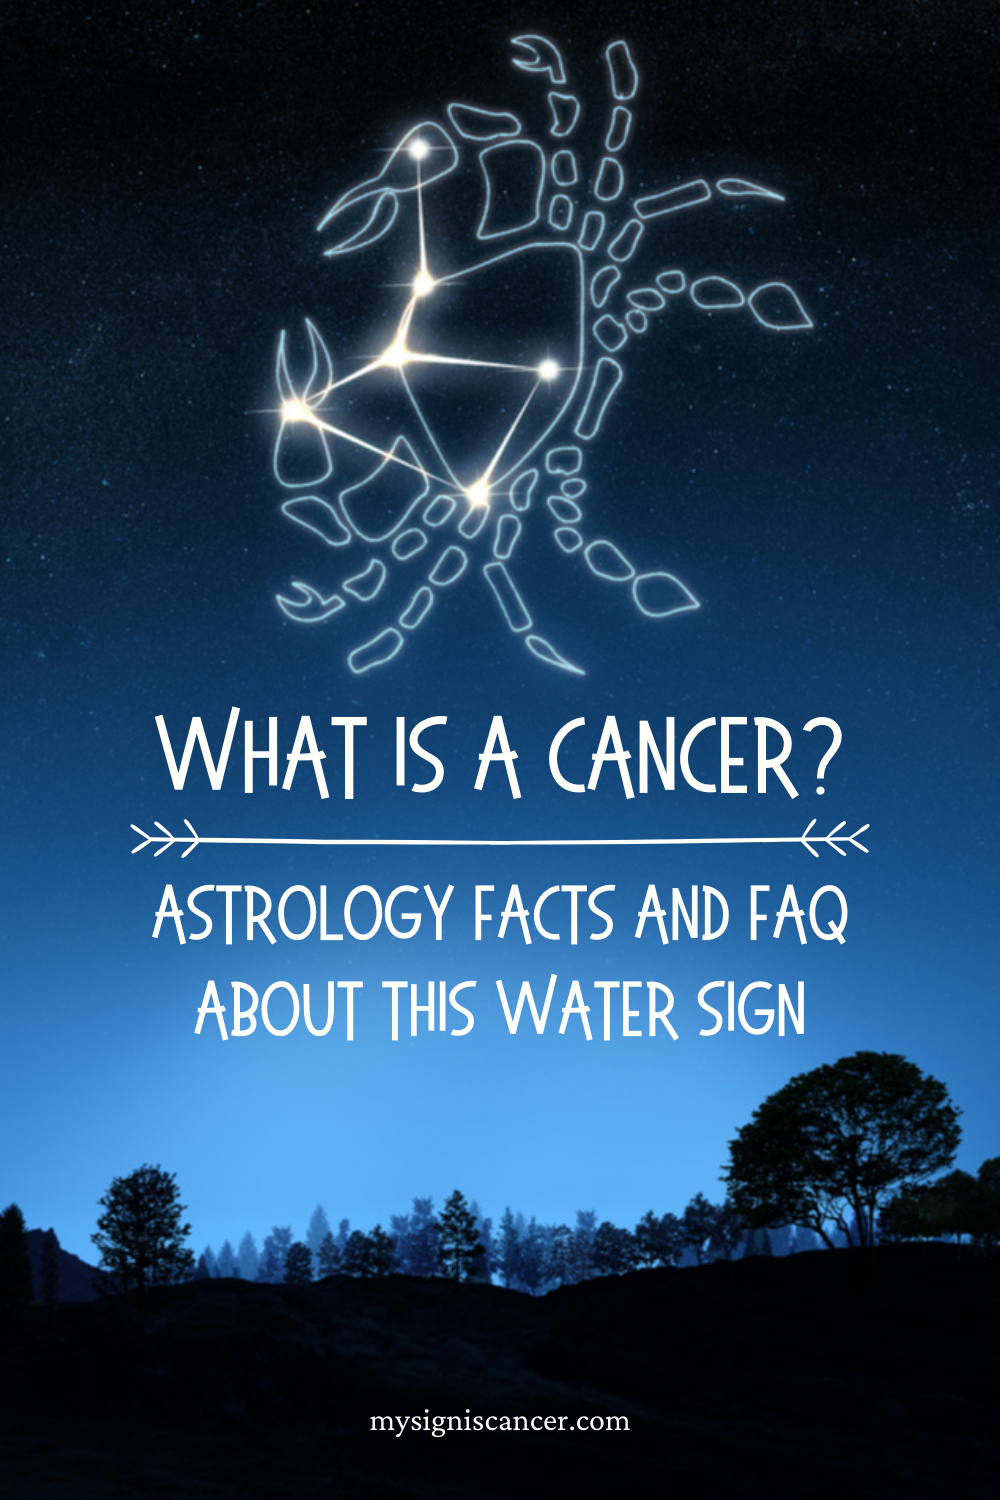 What Is A Cancer: Astrology Facts And FAQ About This Water Sign, Cancer Zodiac Facts #cancersign #cancerzodiac #astrology #zodiacsign